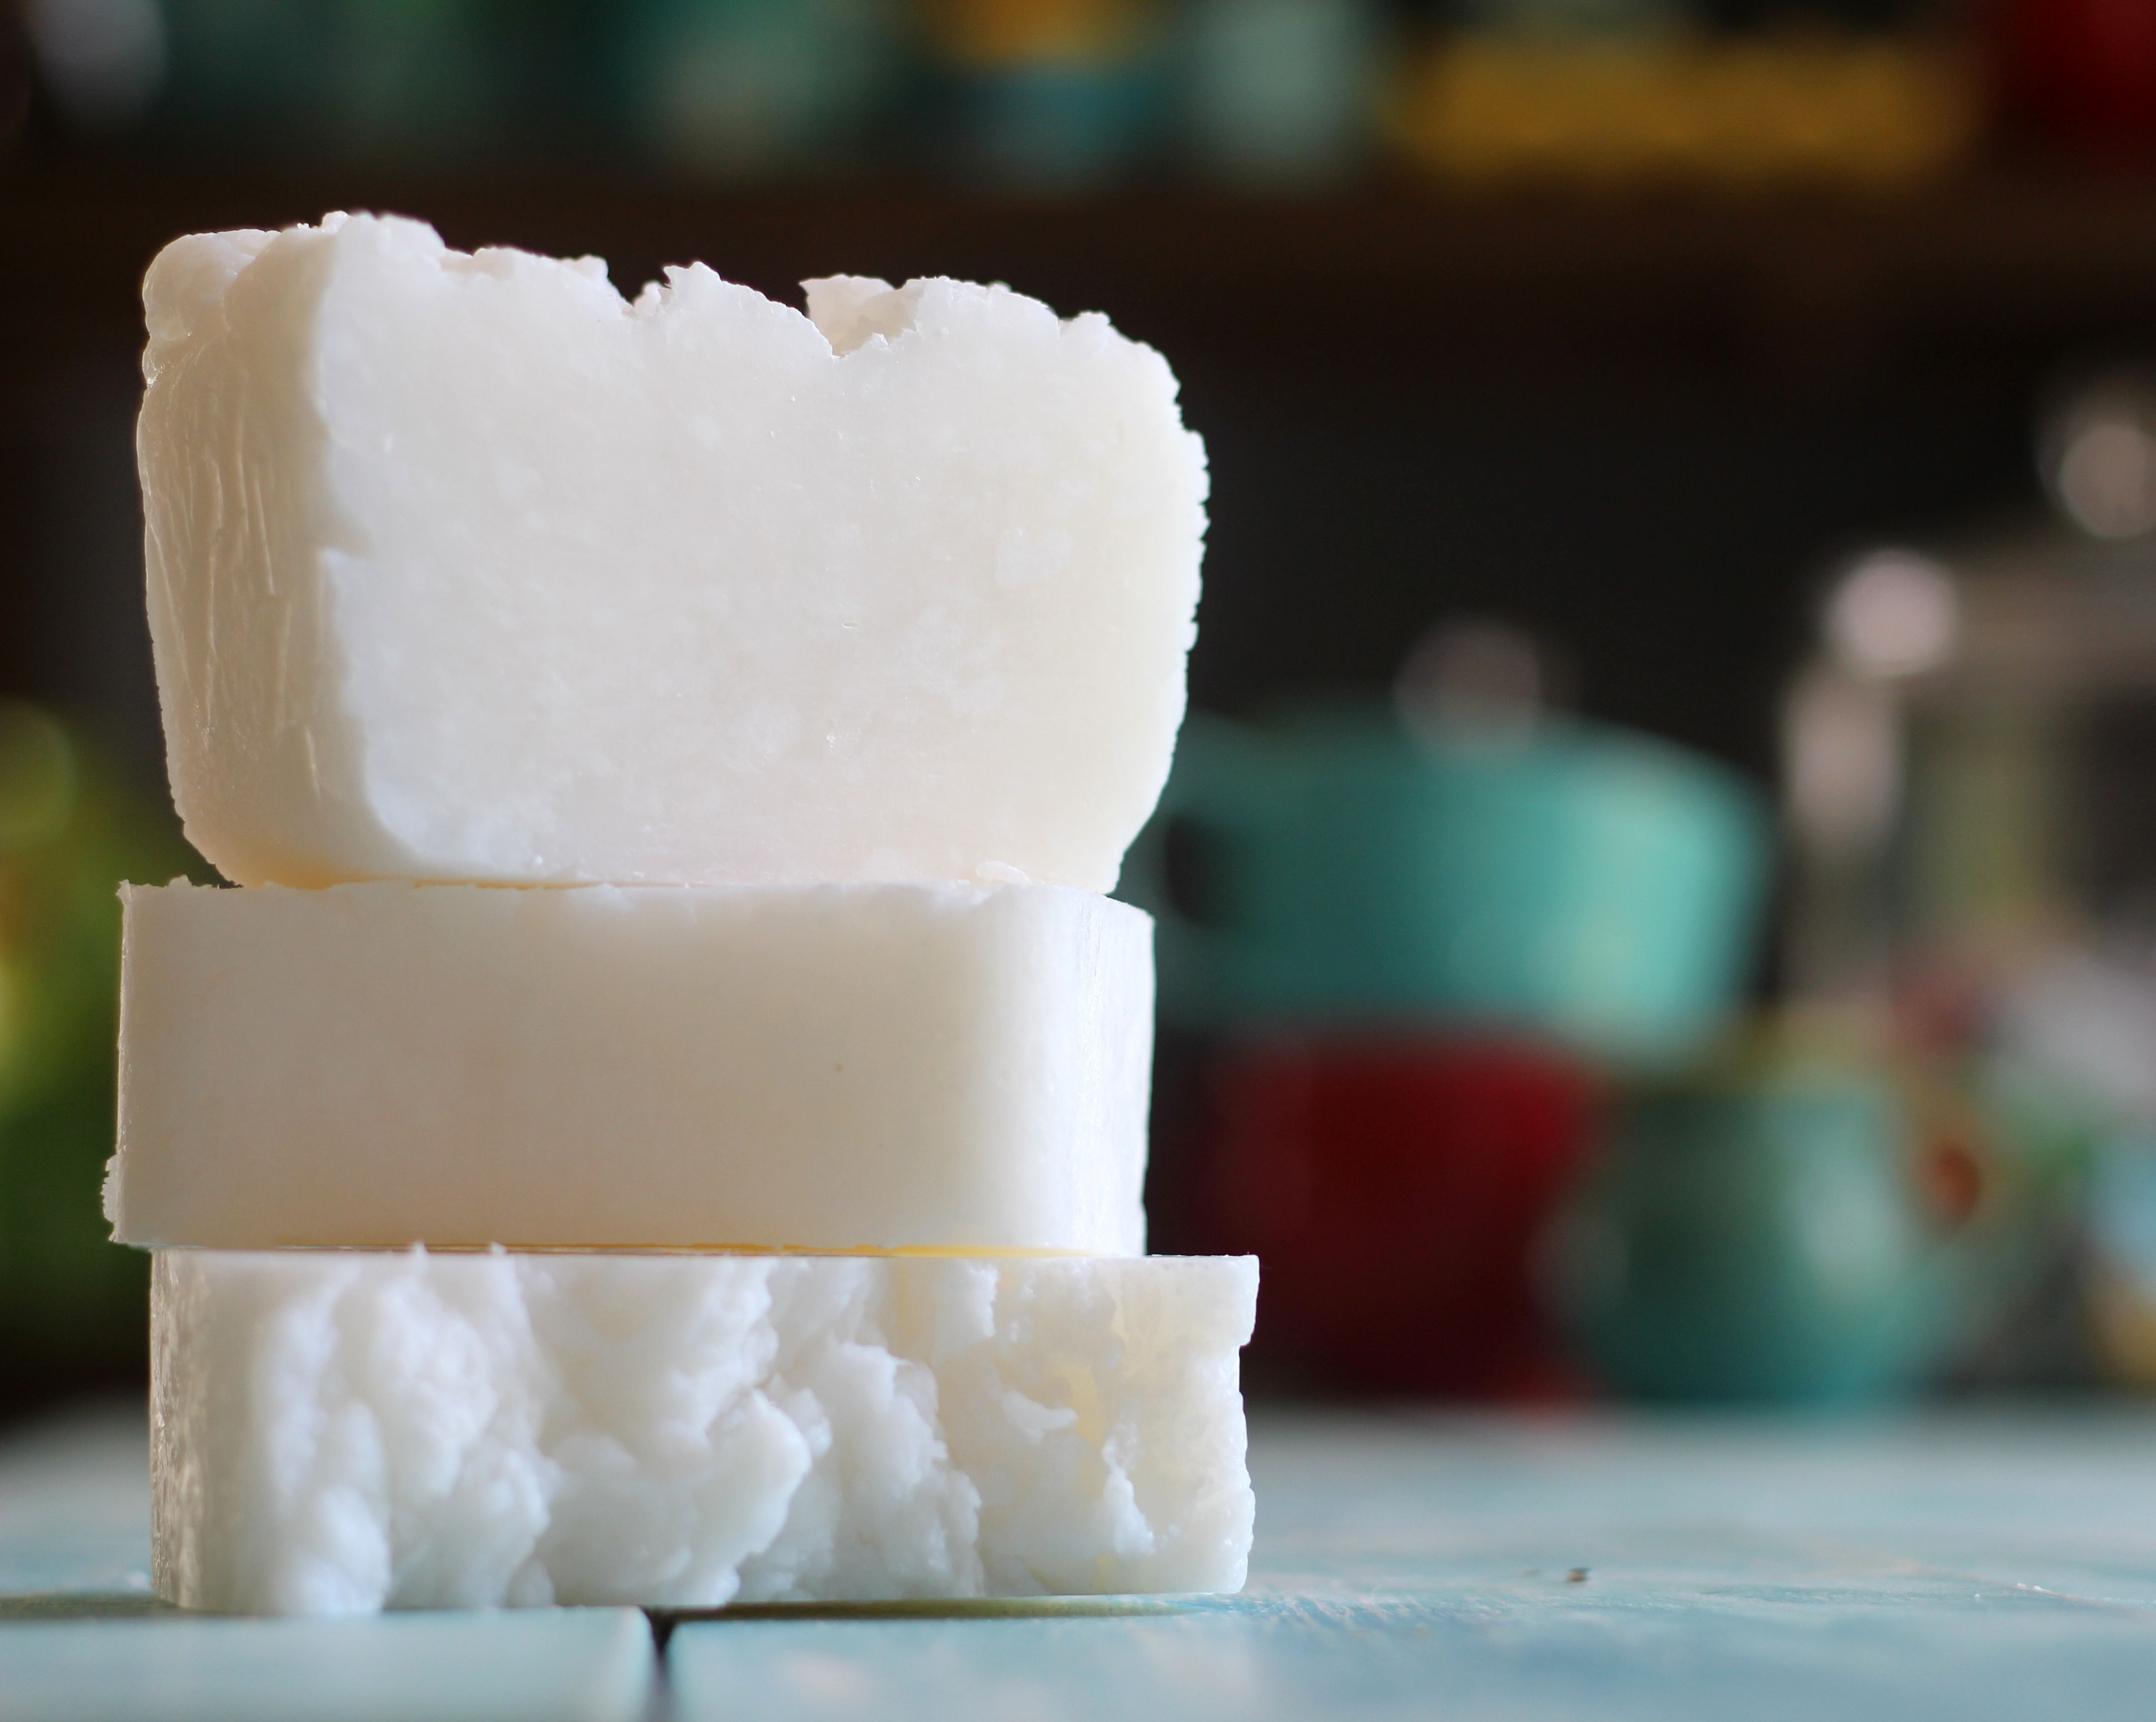 coconut oil shampoo bar recipe (video tutorial) | soaps & recipes